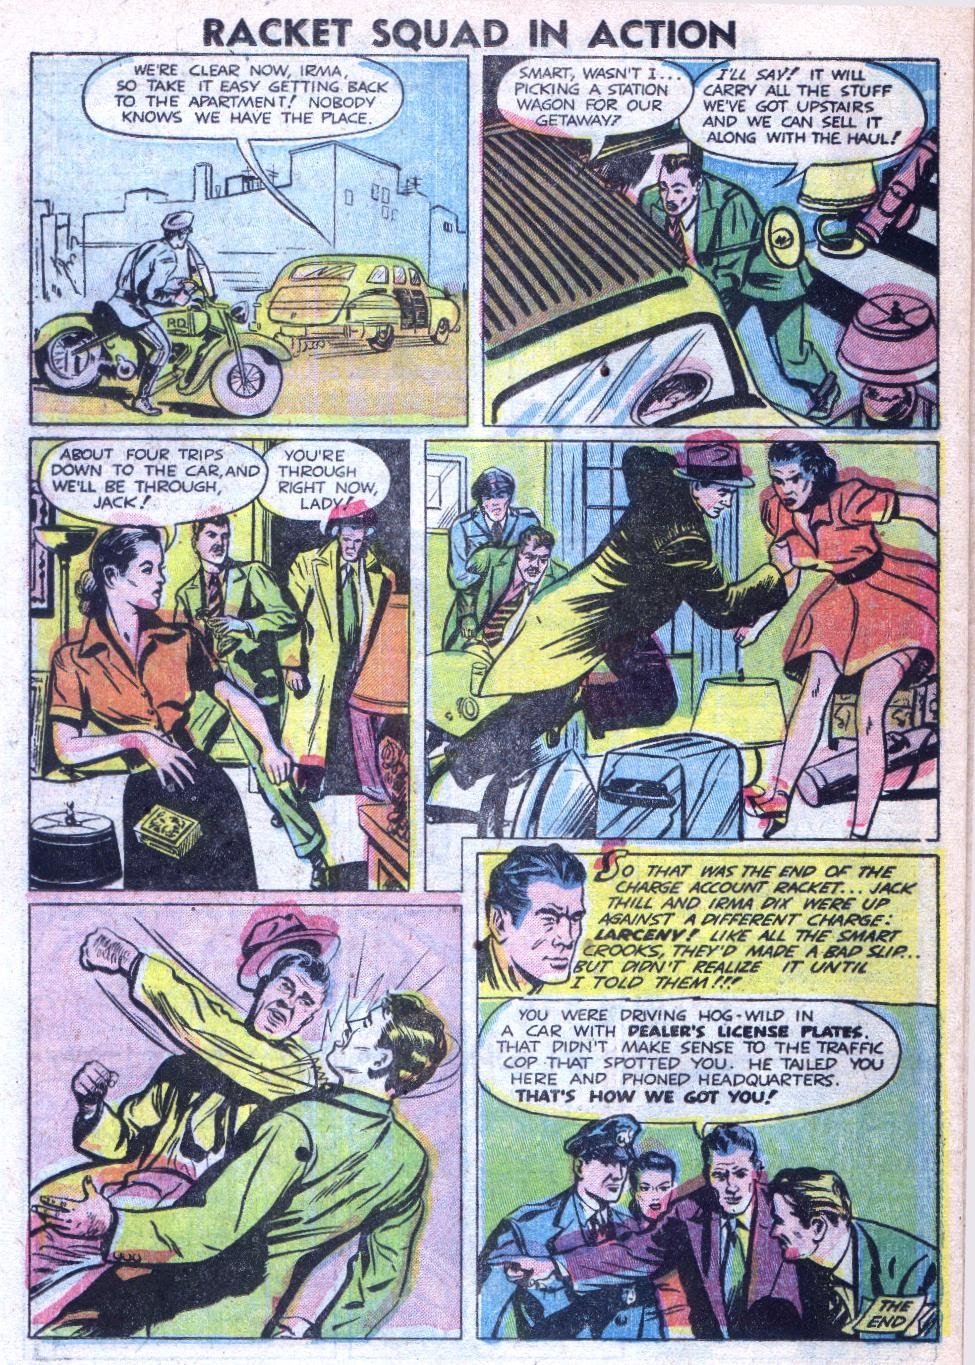 Read online Racket Squad in Action comic -  Issue #4 - 22